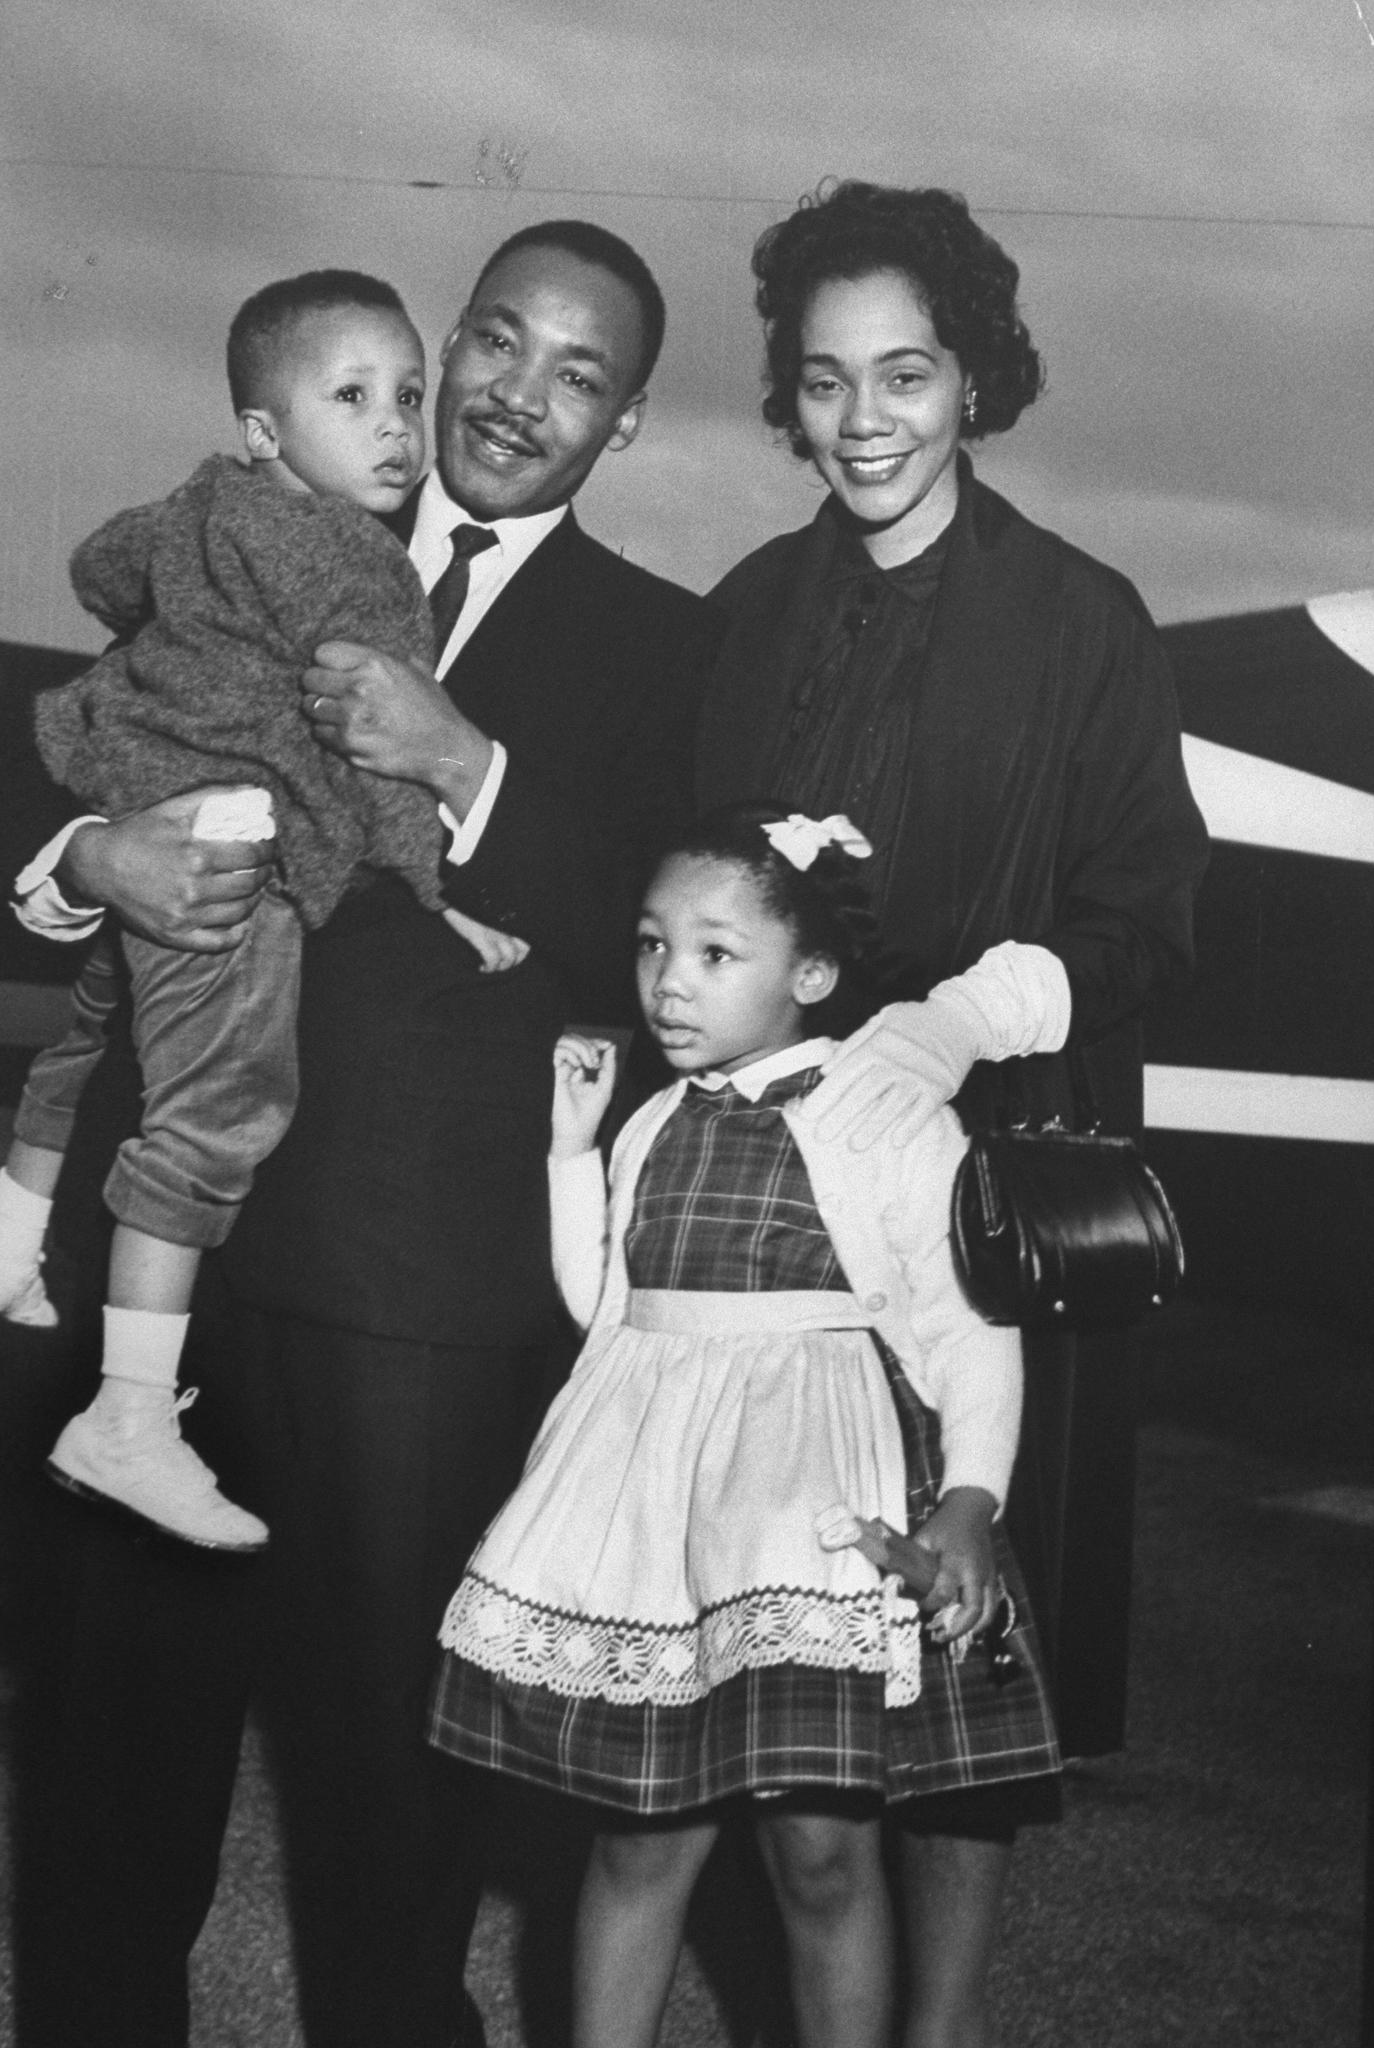 Civil Rights leader Dr. Martin Luther King Jr. holding his son Martin III as his daughter Bernice and wife Coretta greet him at the airport upon his release from Georgia State prison after incarceration for leading boycotts.